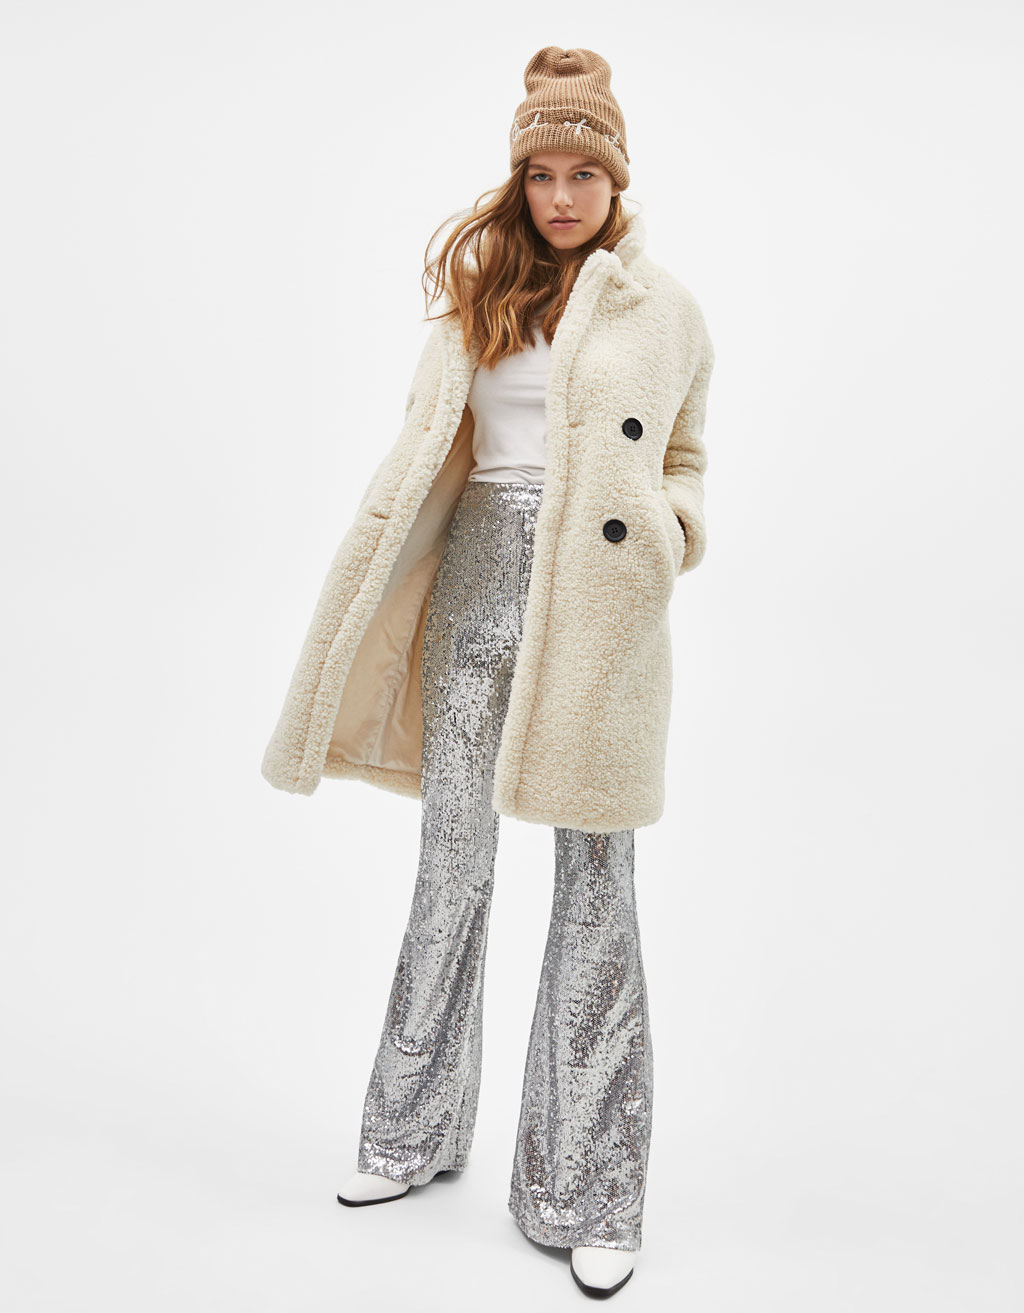 Winterjas 2019 Trend Dames.Jassen Collectie Dames Bershka Netherlands